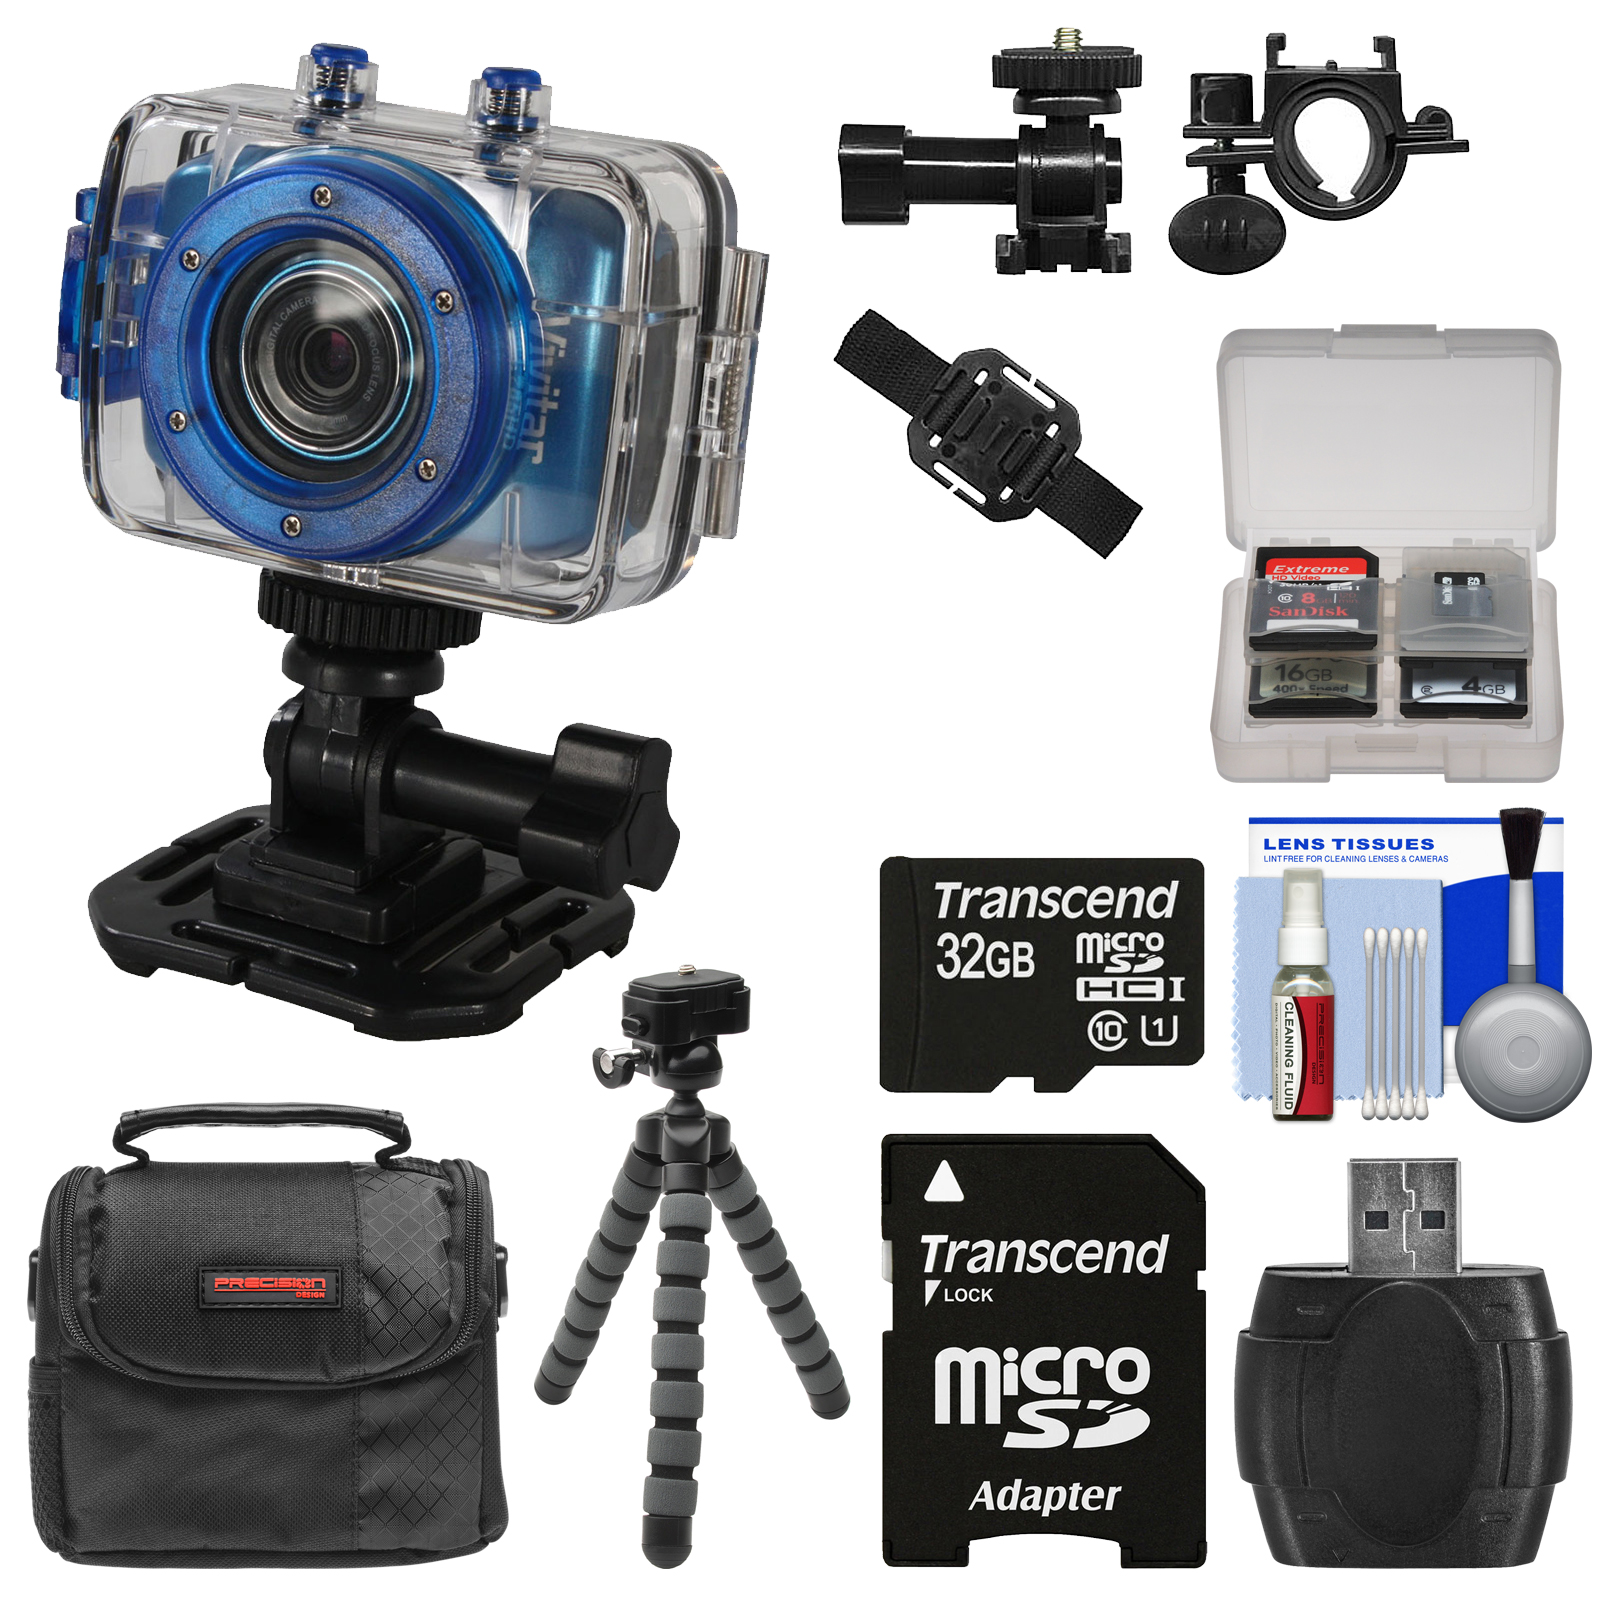 Vivitar DVR785HD Waterproof Action Video Camera Camcorder (Blue) with Helmet & Bike Mounts with 32GB Card + Case + Flex Tripod + Kit